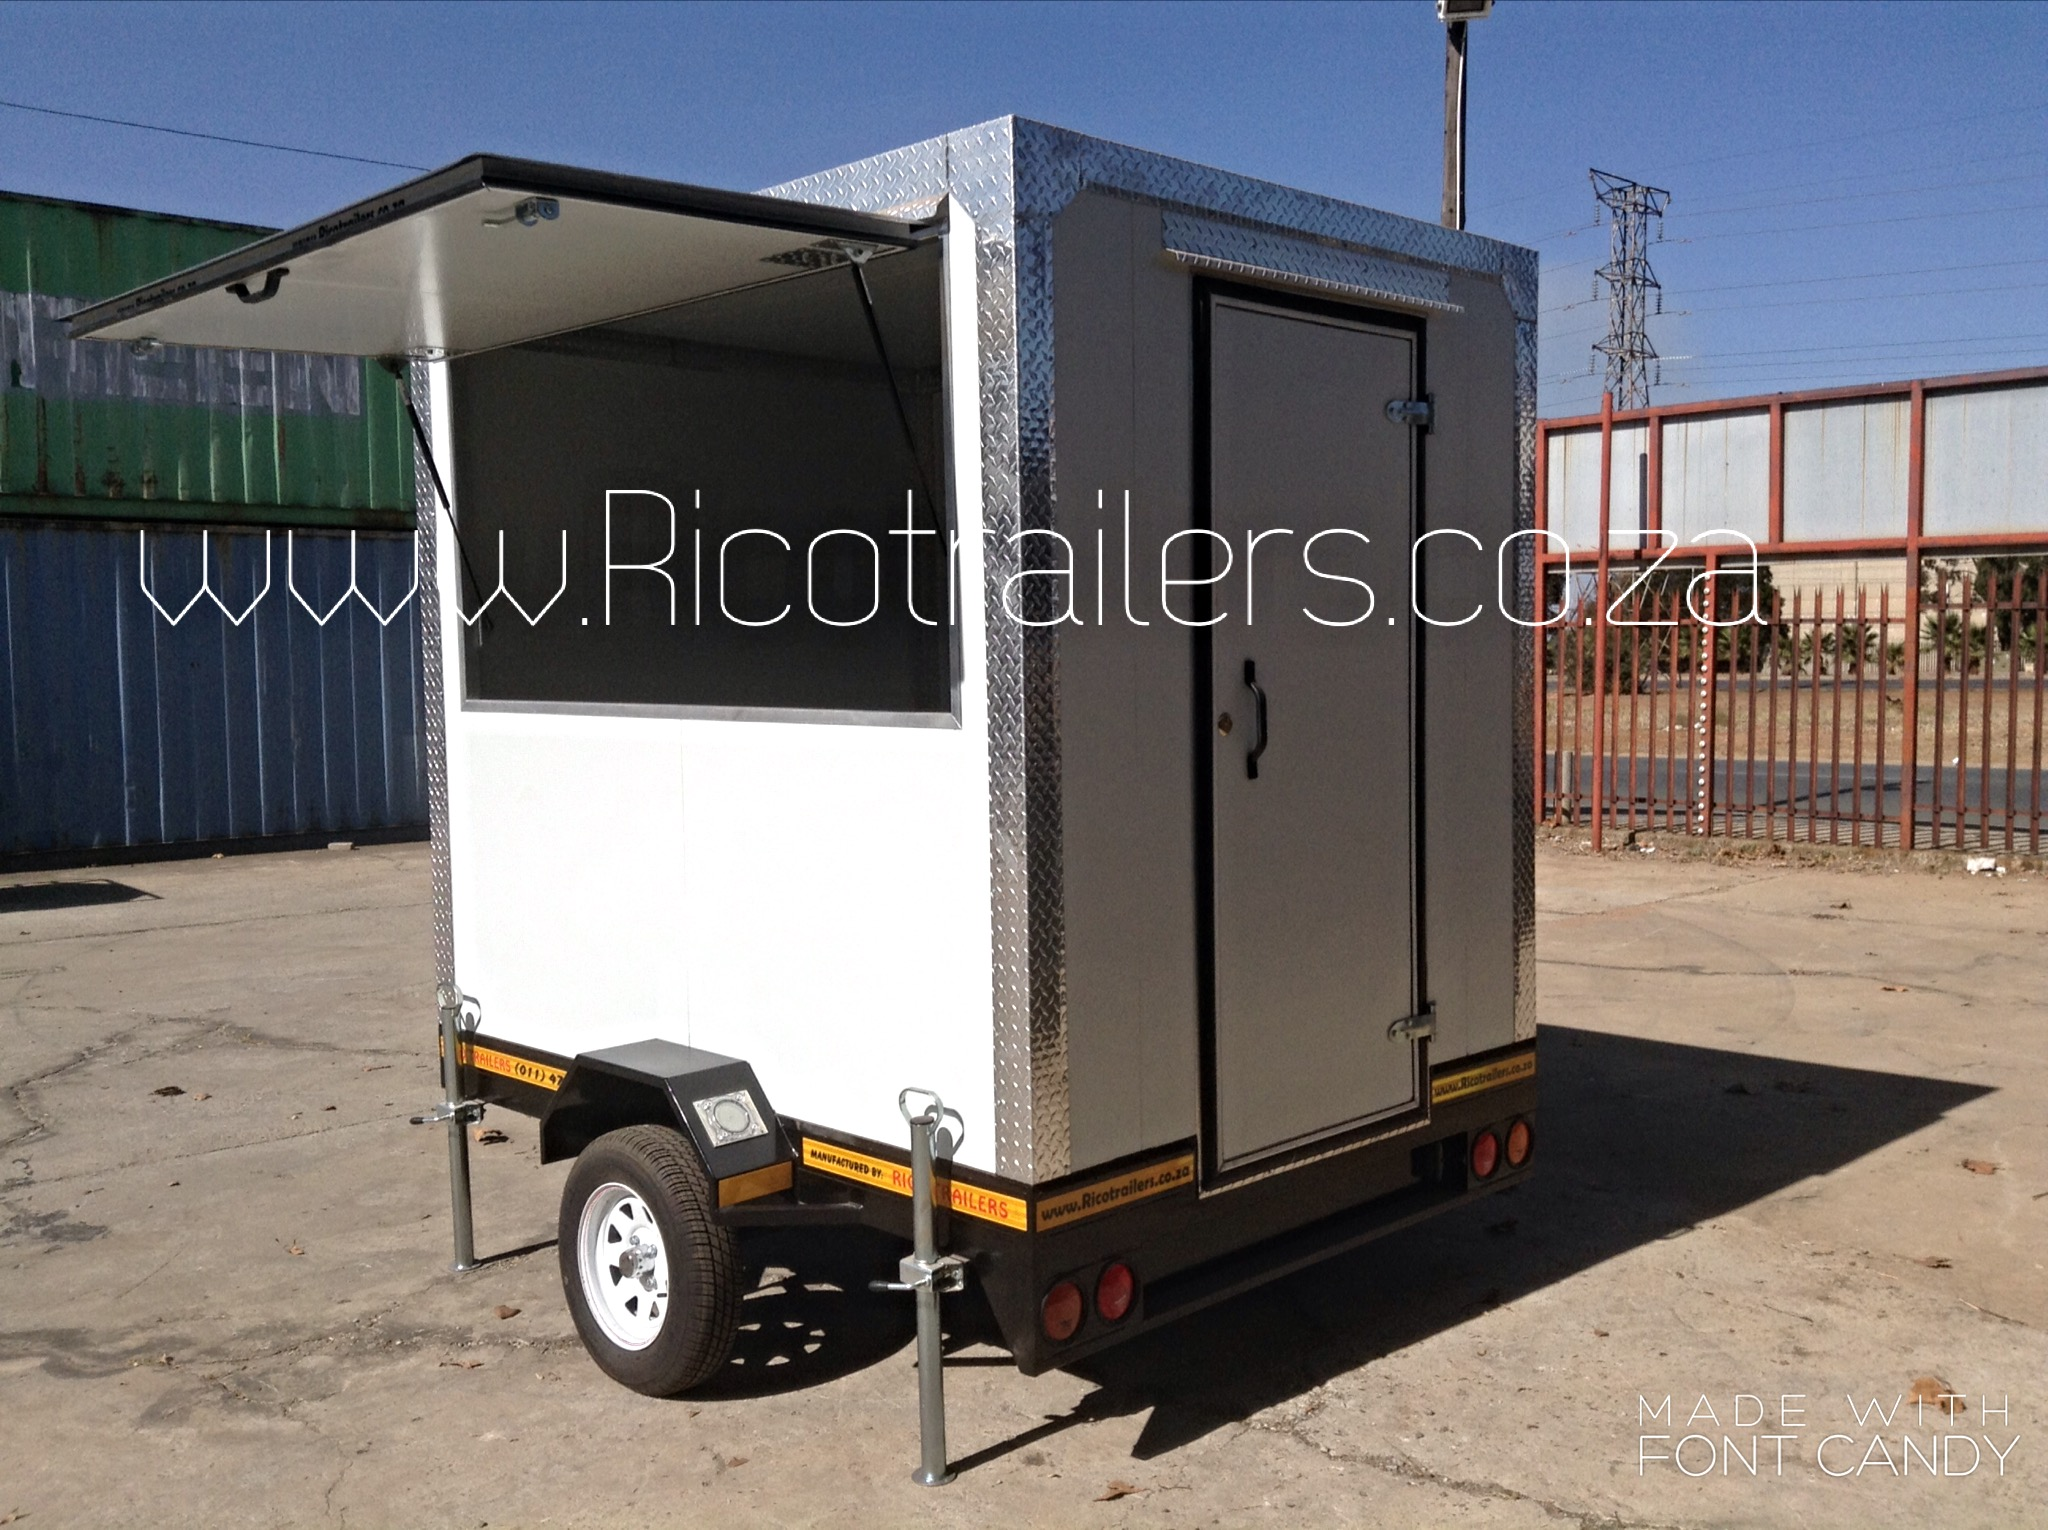 Mobile Kitchen Trailer for sale CHEAP Johannesburg SA